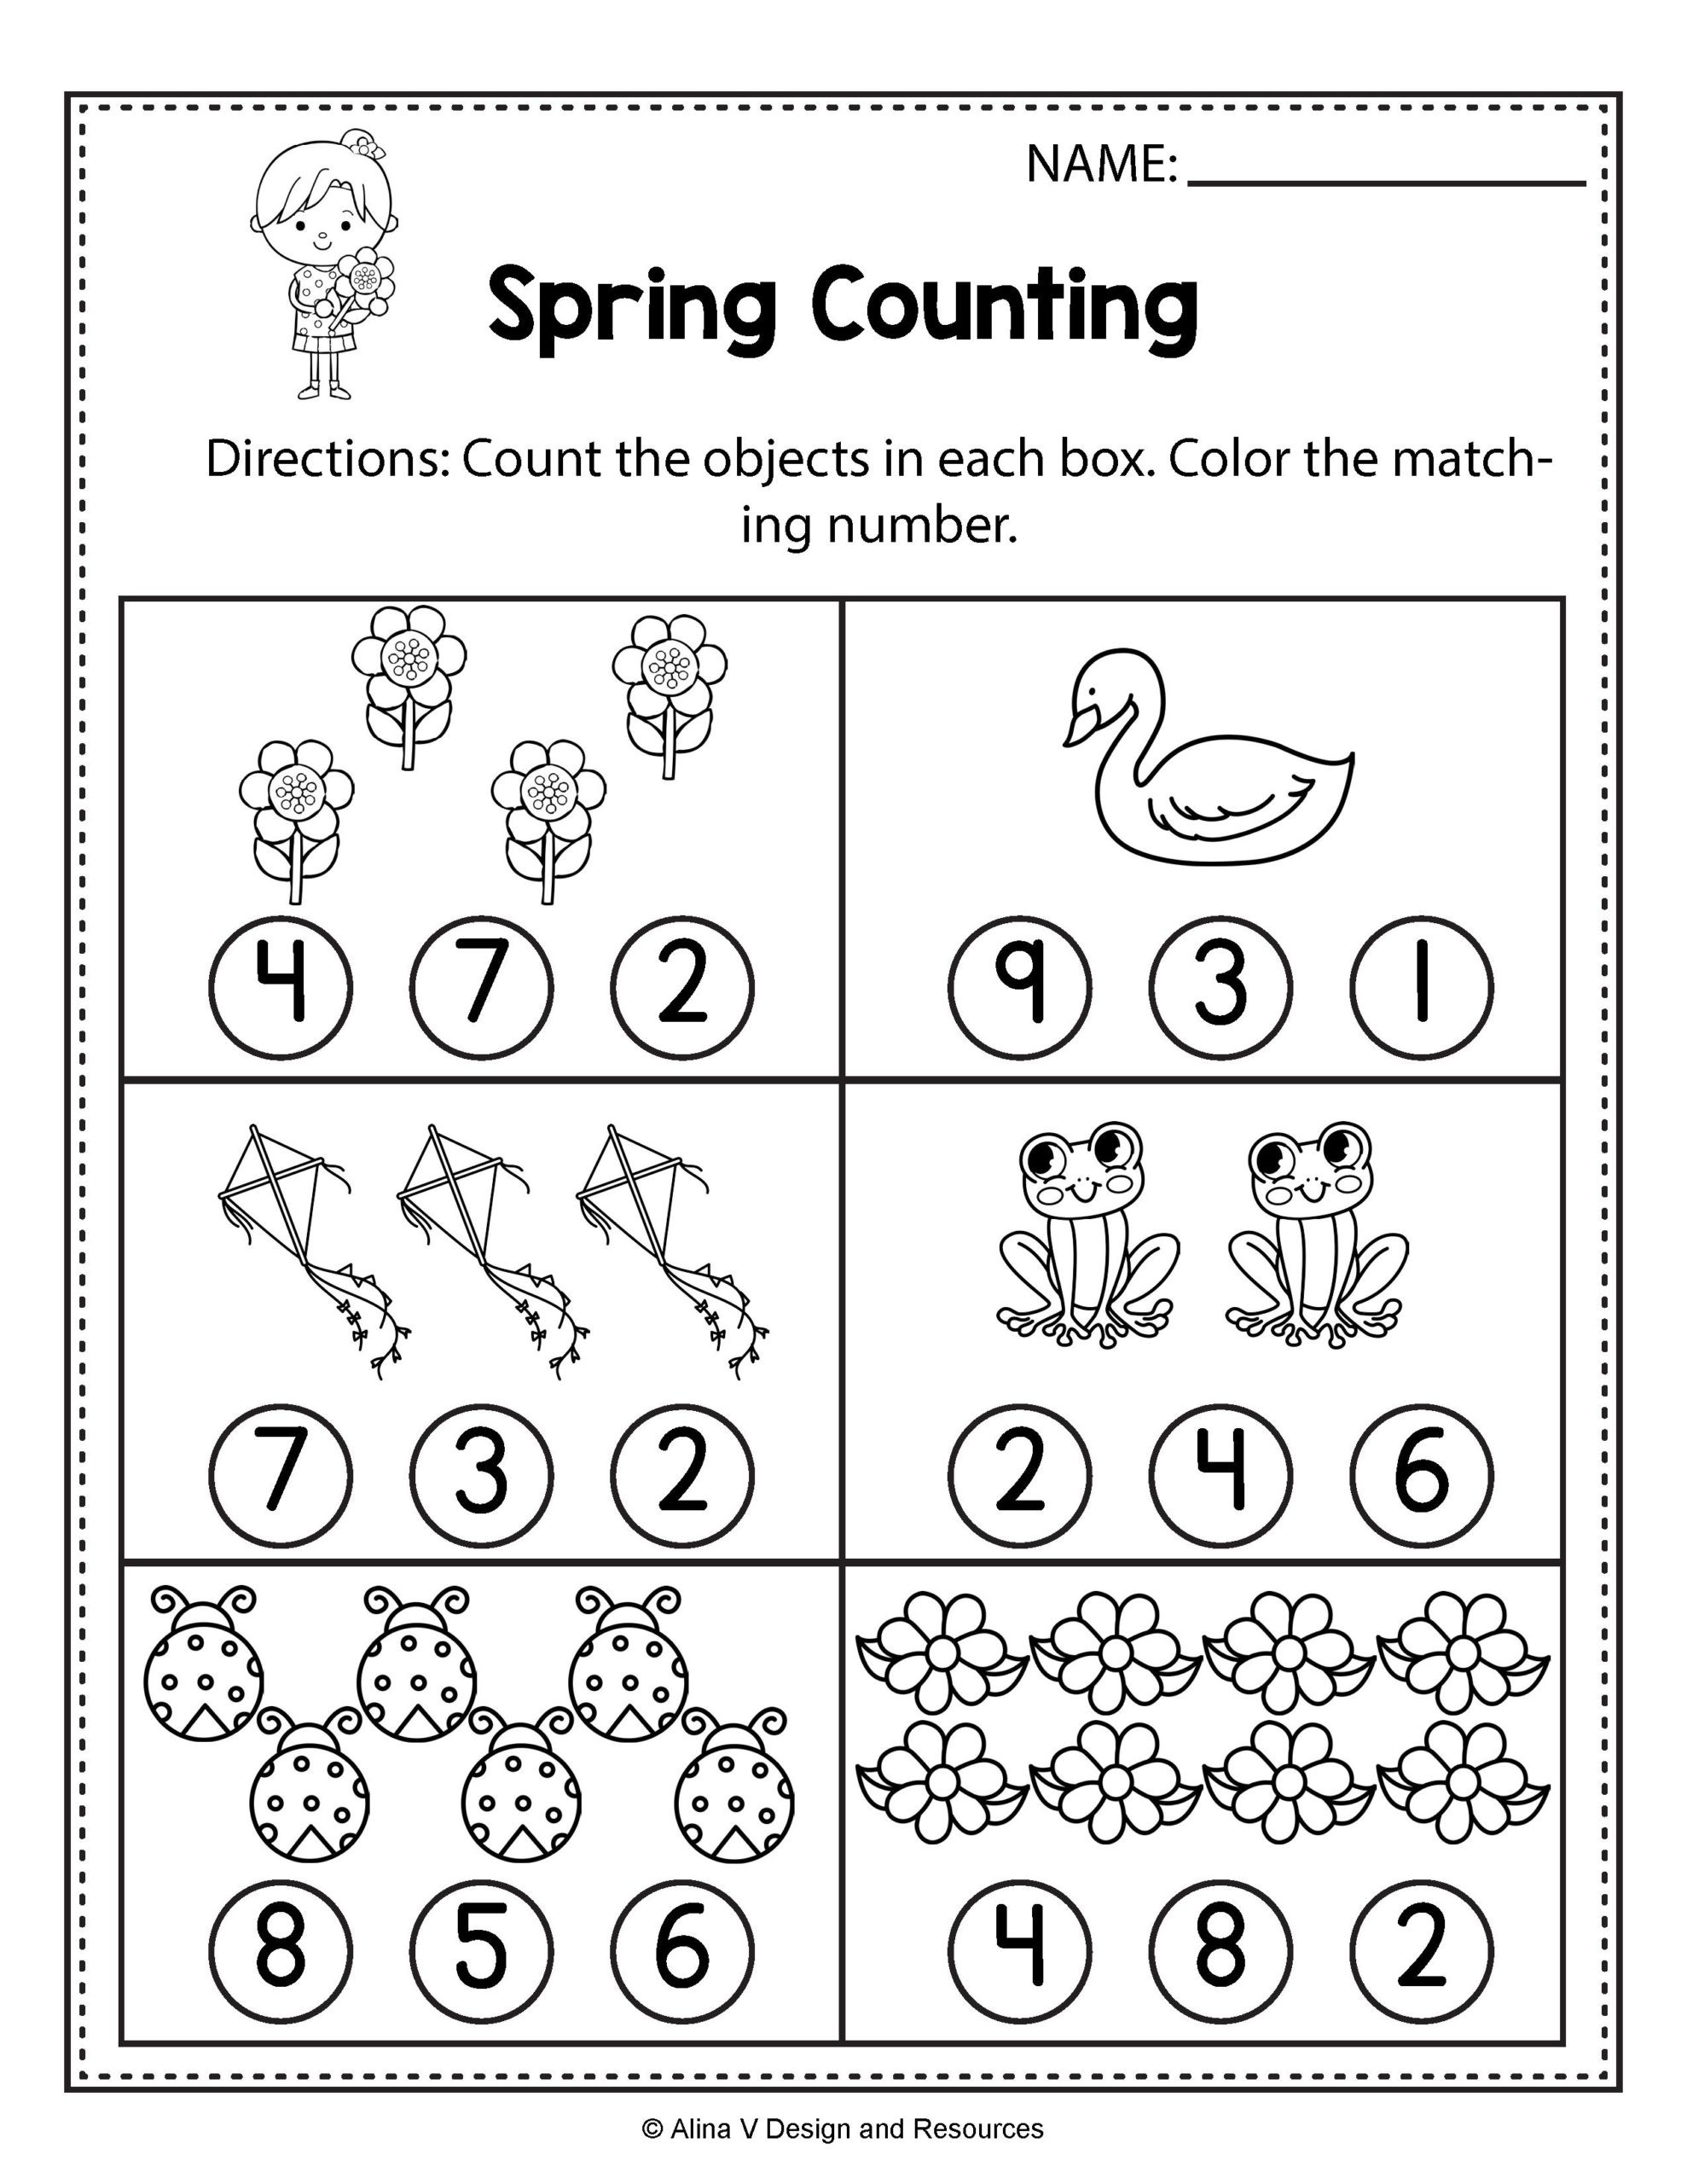 Weather Worksheets for 2nd Graders Weather Activities Worksheet for Preschool Printable